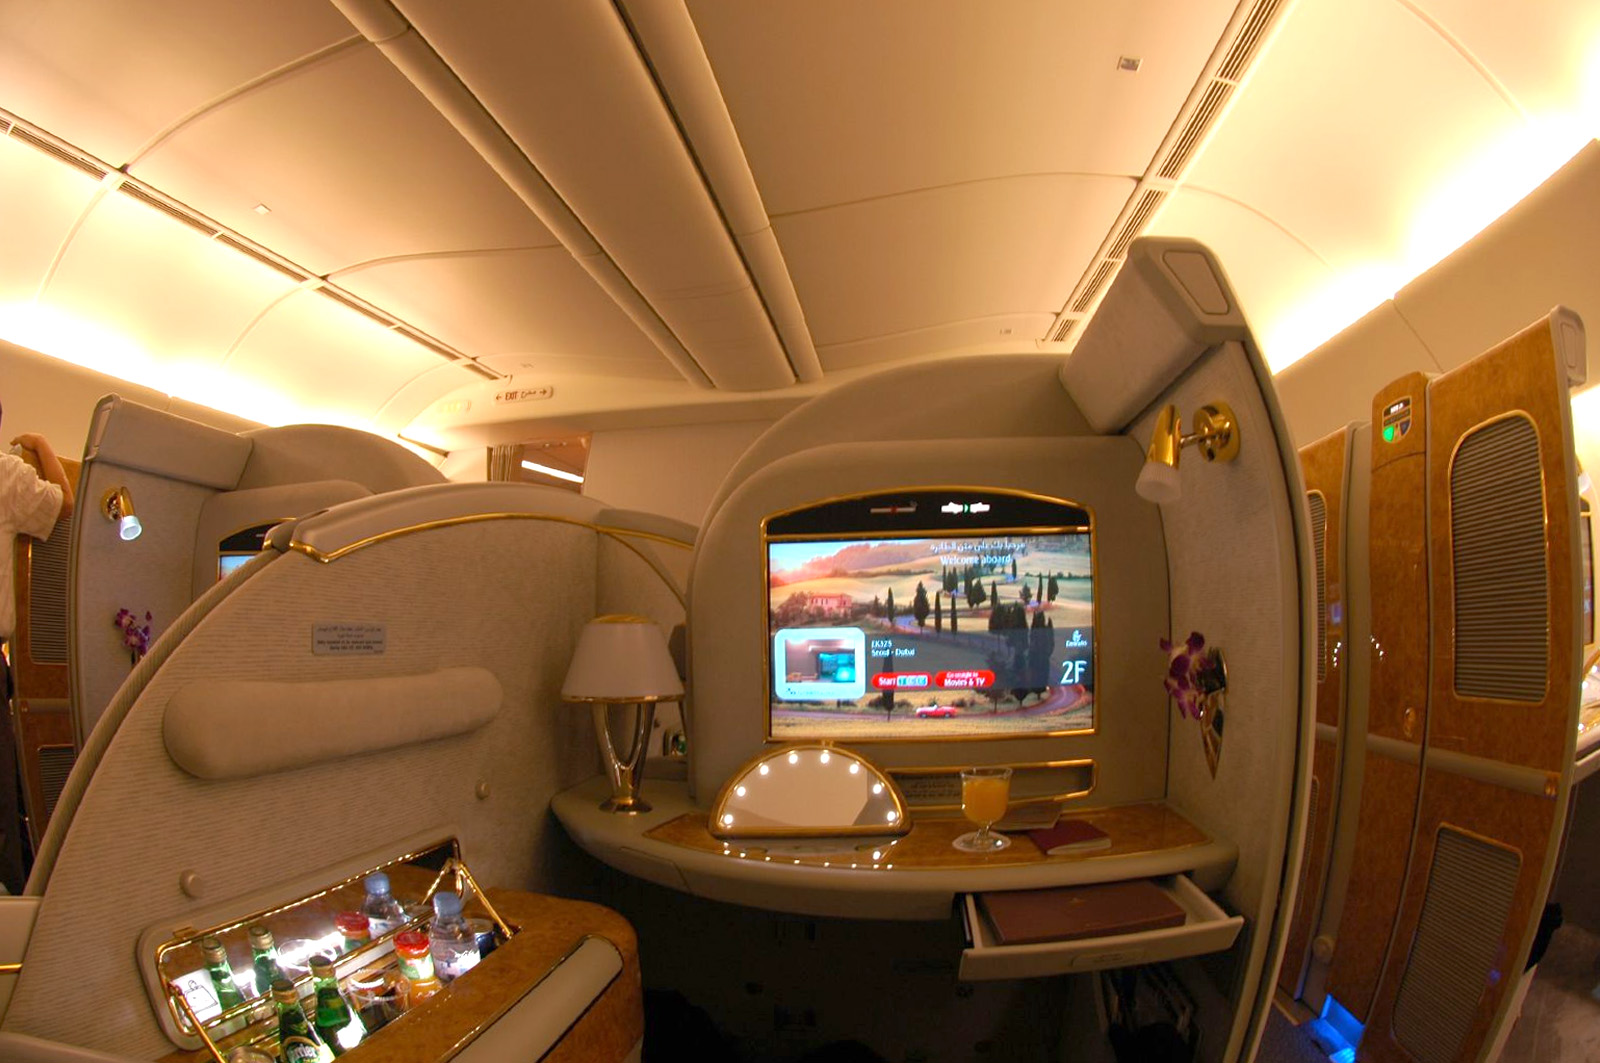 http://upload.wikimedia.org/wikipedia/commons/e/e9/Emirates_Boeing_777-200LR_First_Class_Suite.jpg